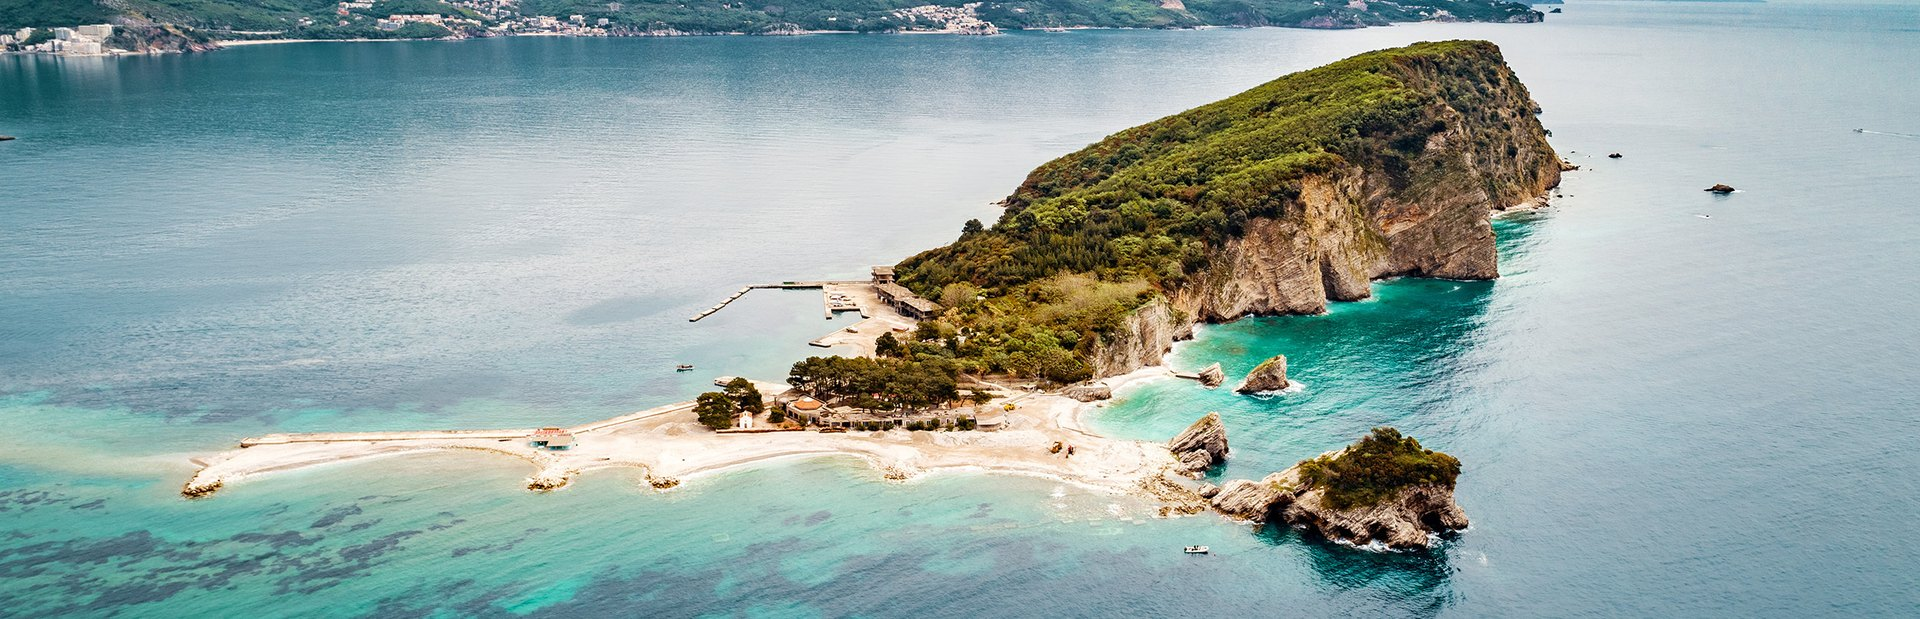 11 unique beaches to visit on your Mediterranean yacht charter